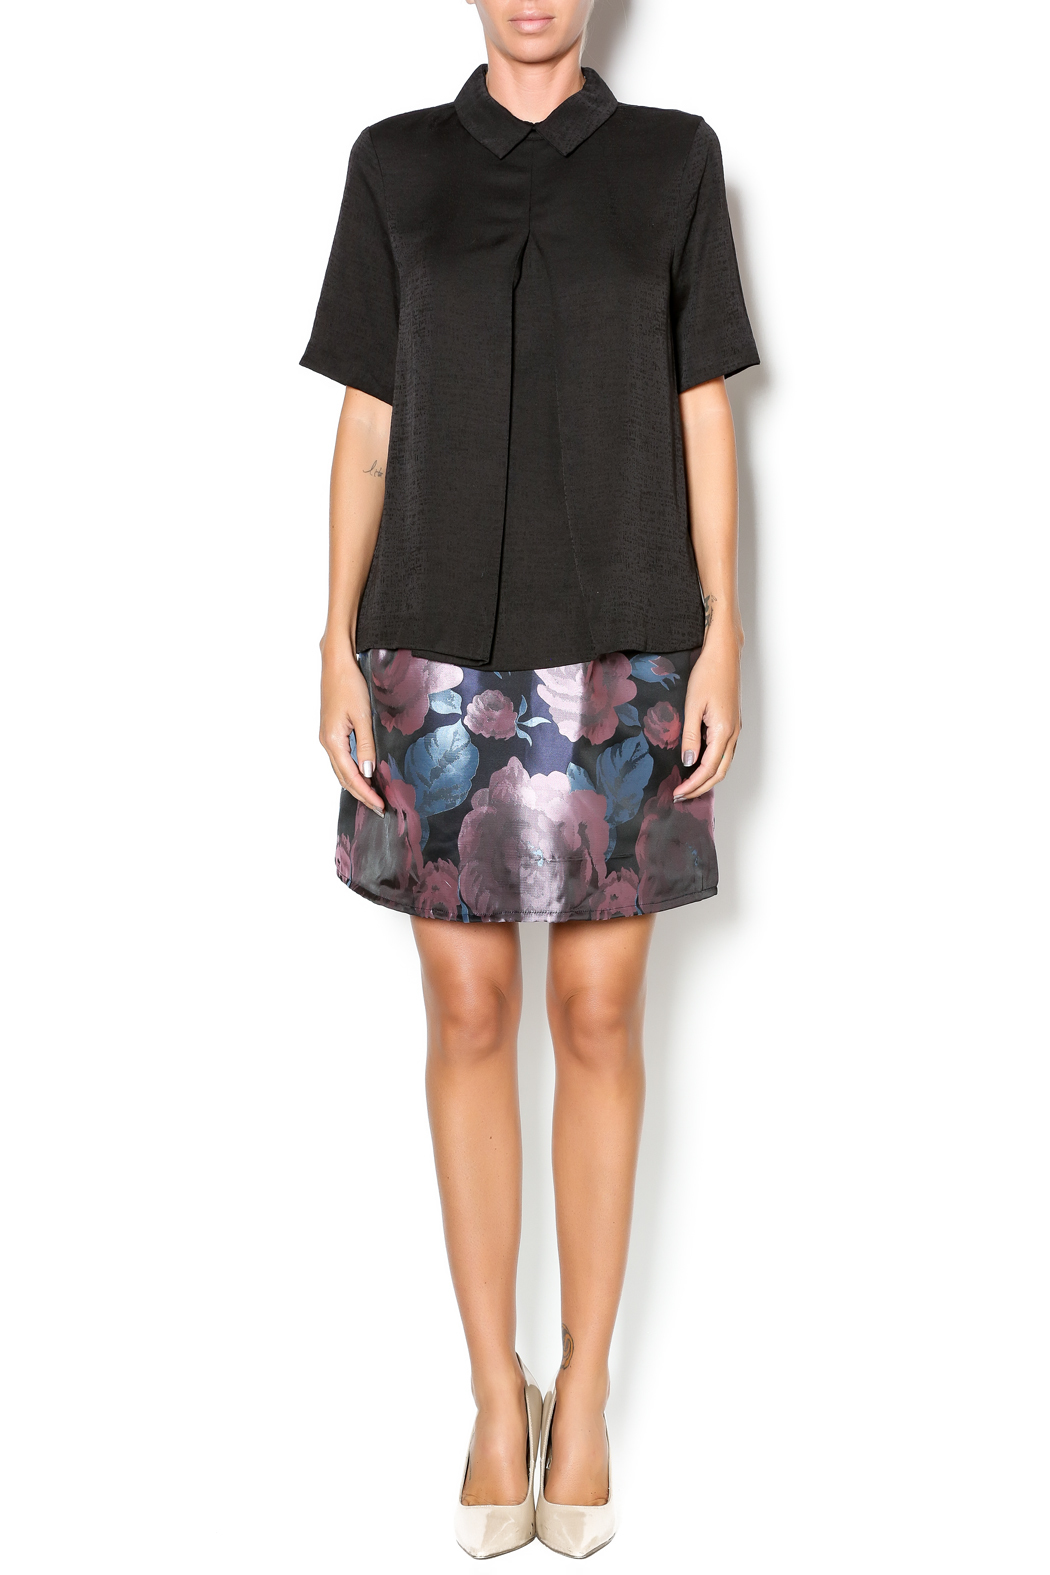 FRNCH Black Collared Top - Front Full Image